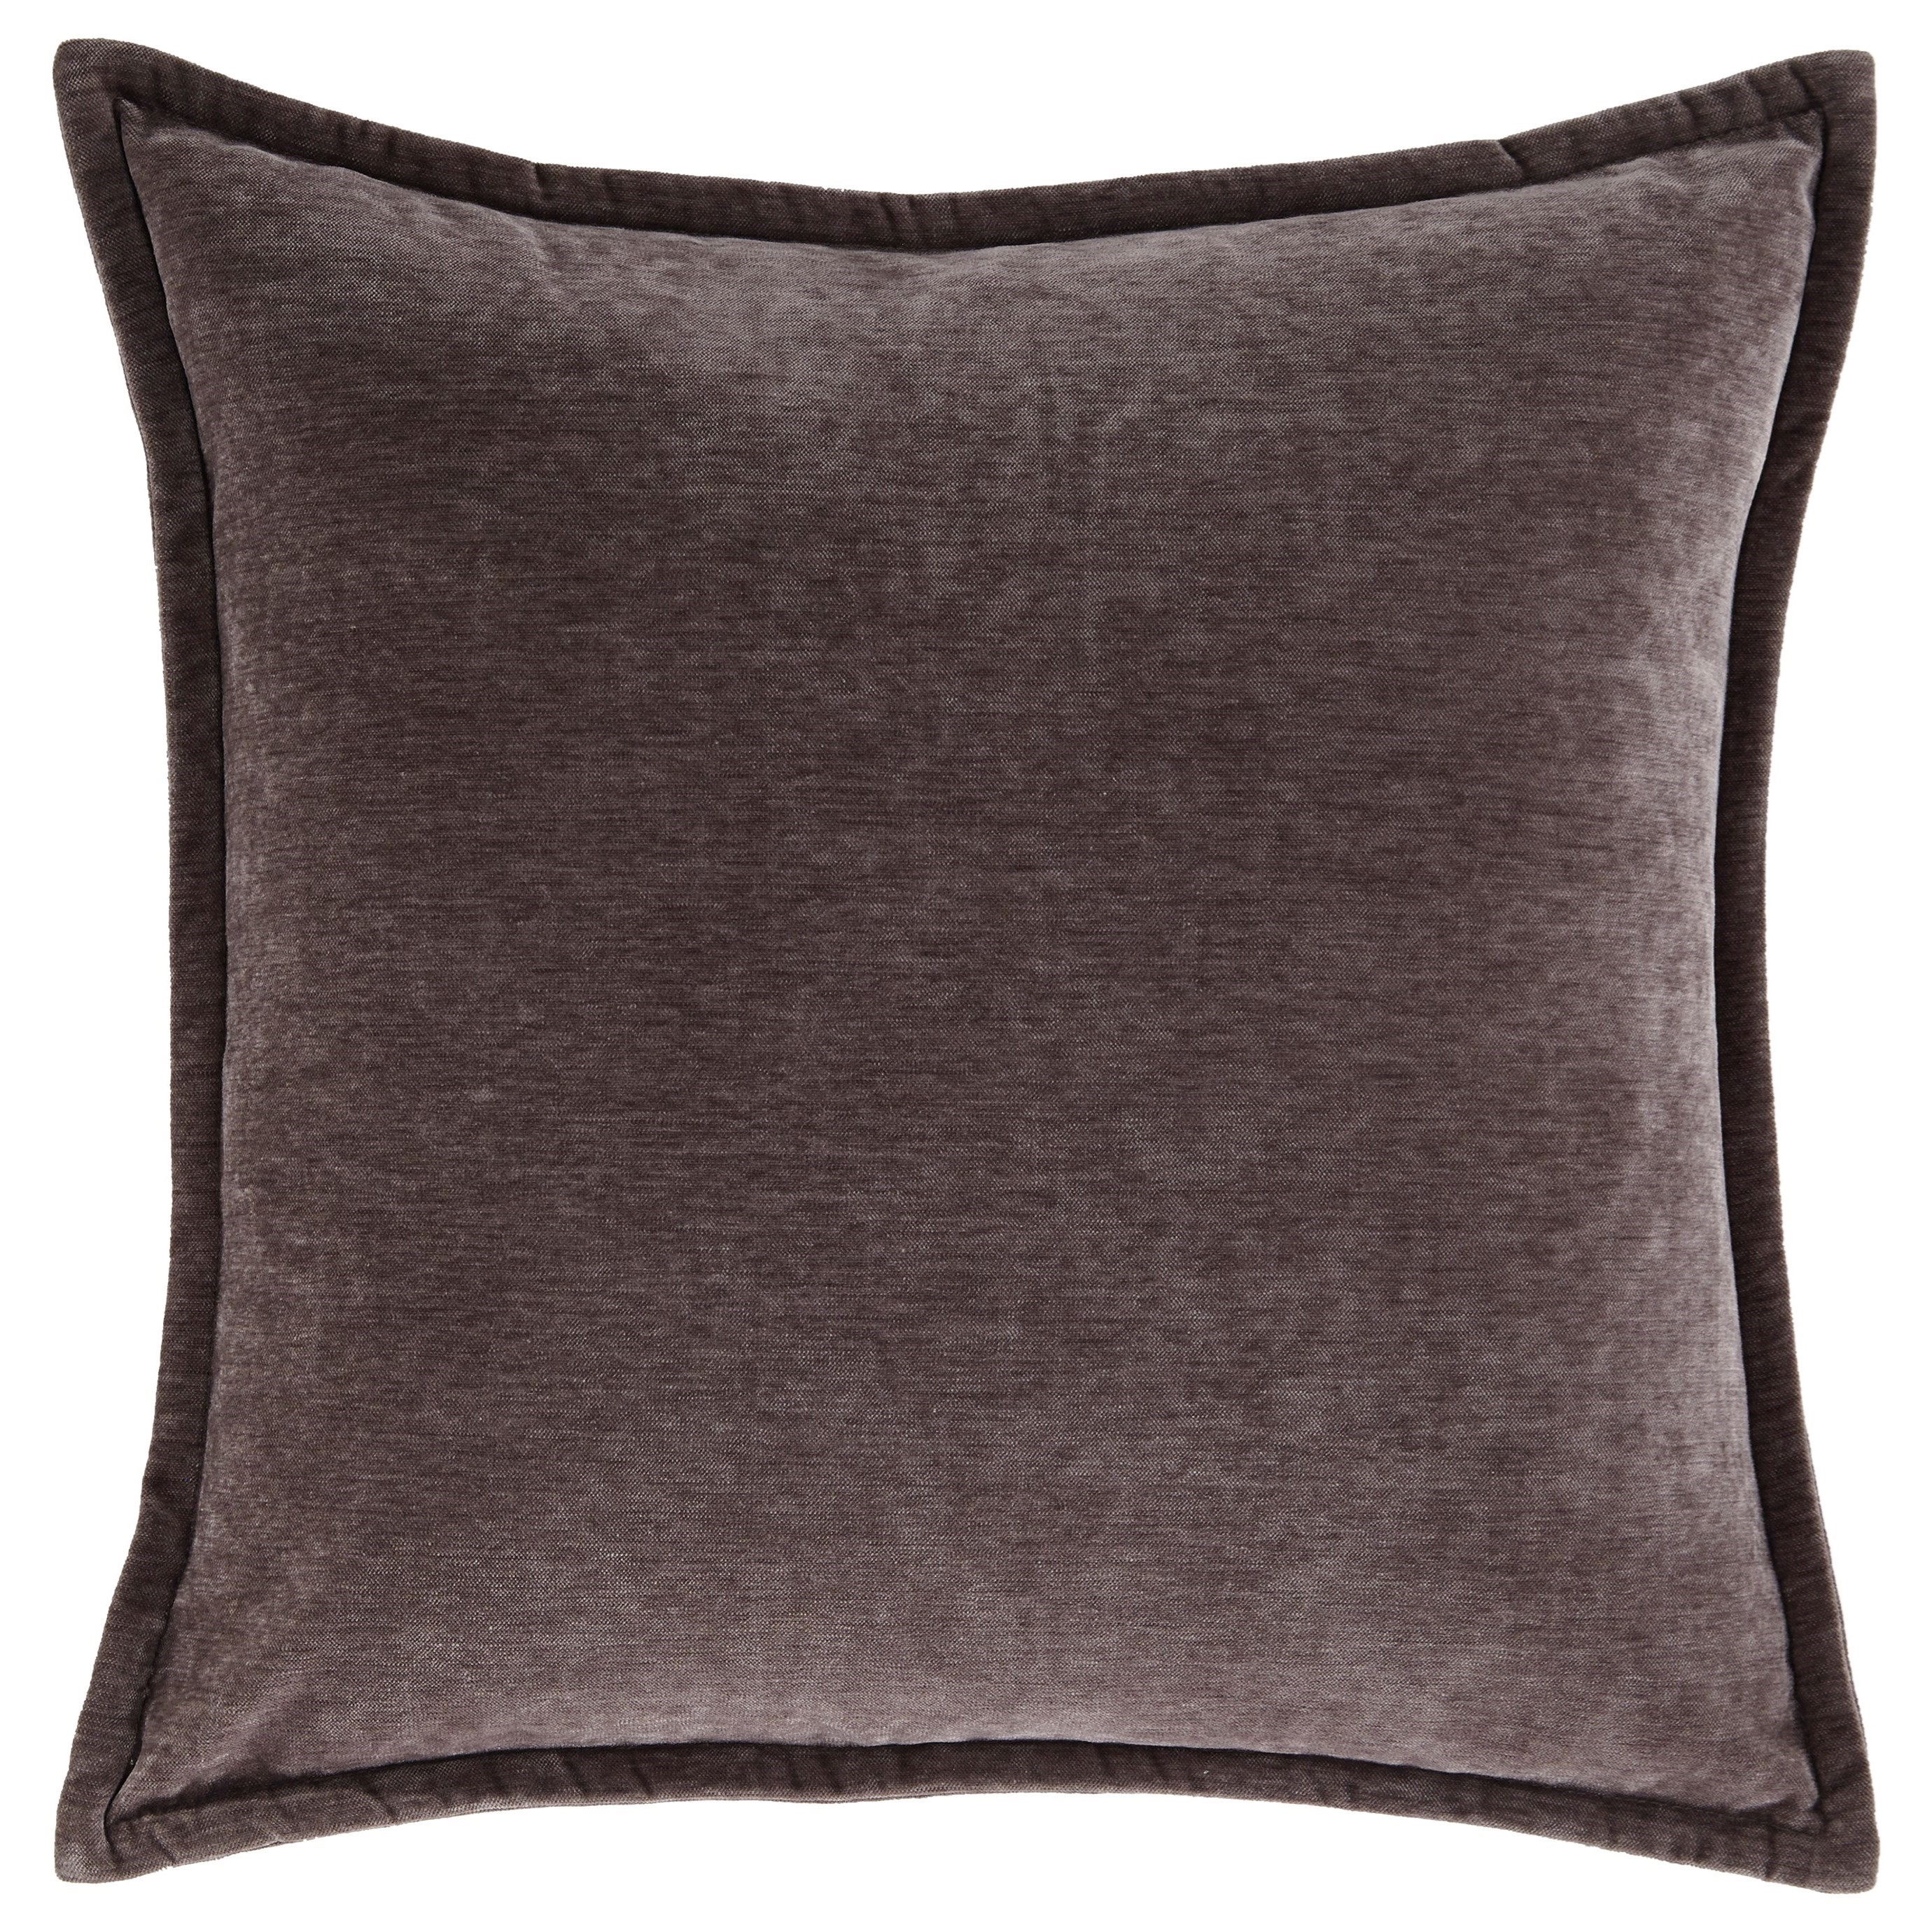 Signature Design by Ashley Pillows Irene Charcoal Pillow - Item Number: A1000734P